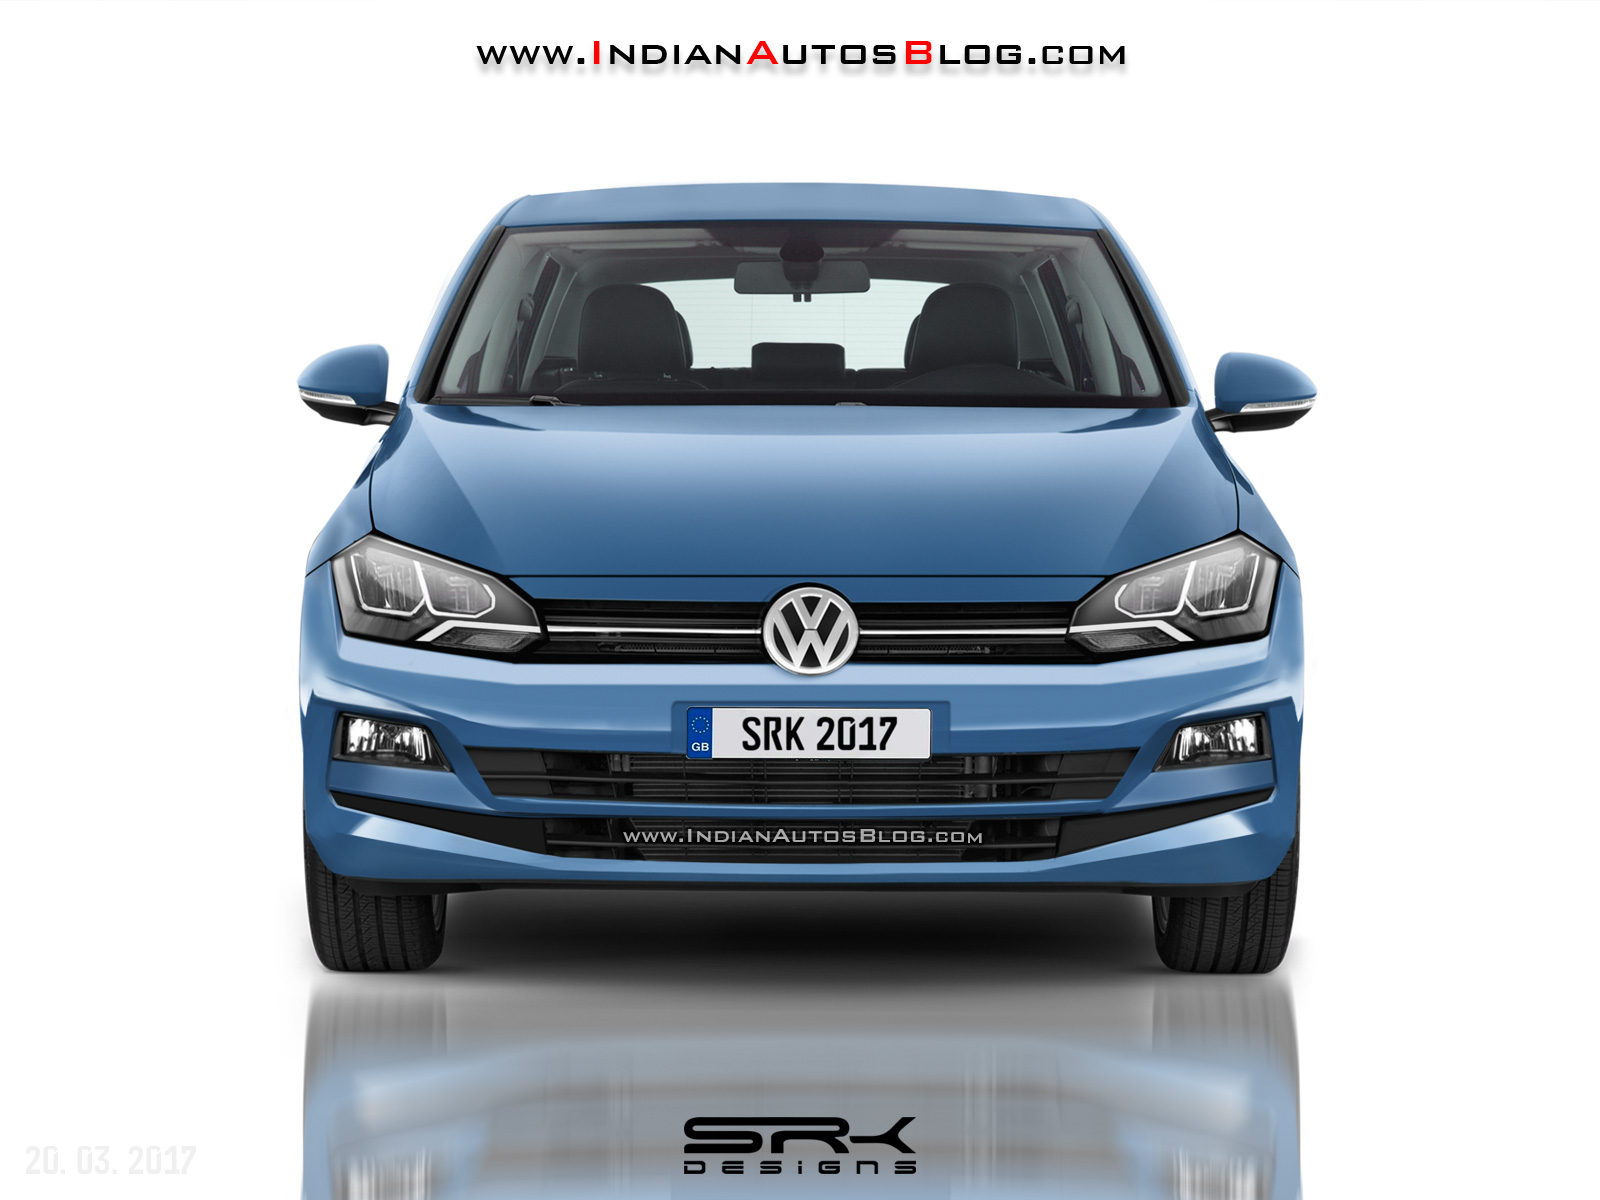 2017 VW Polo front rendering